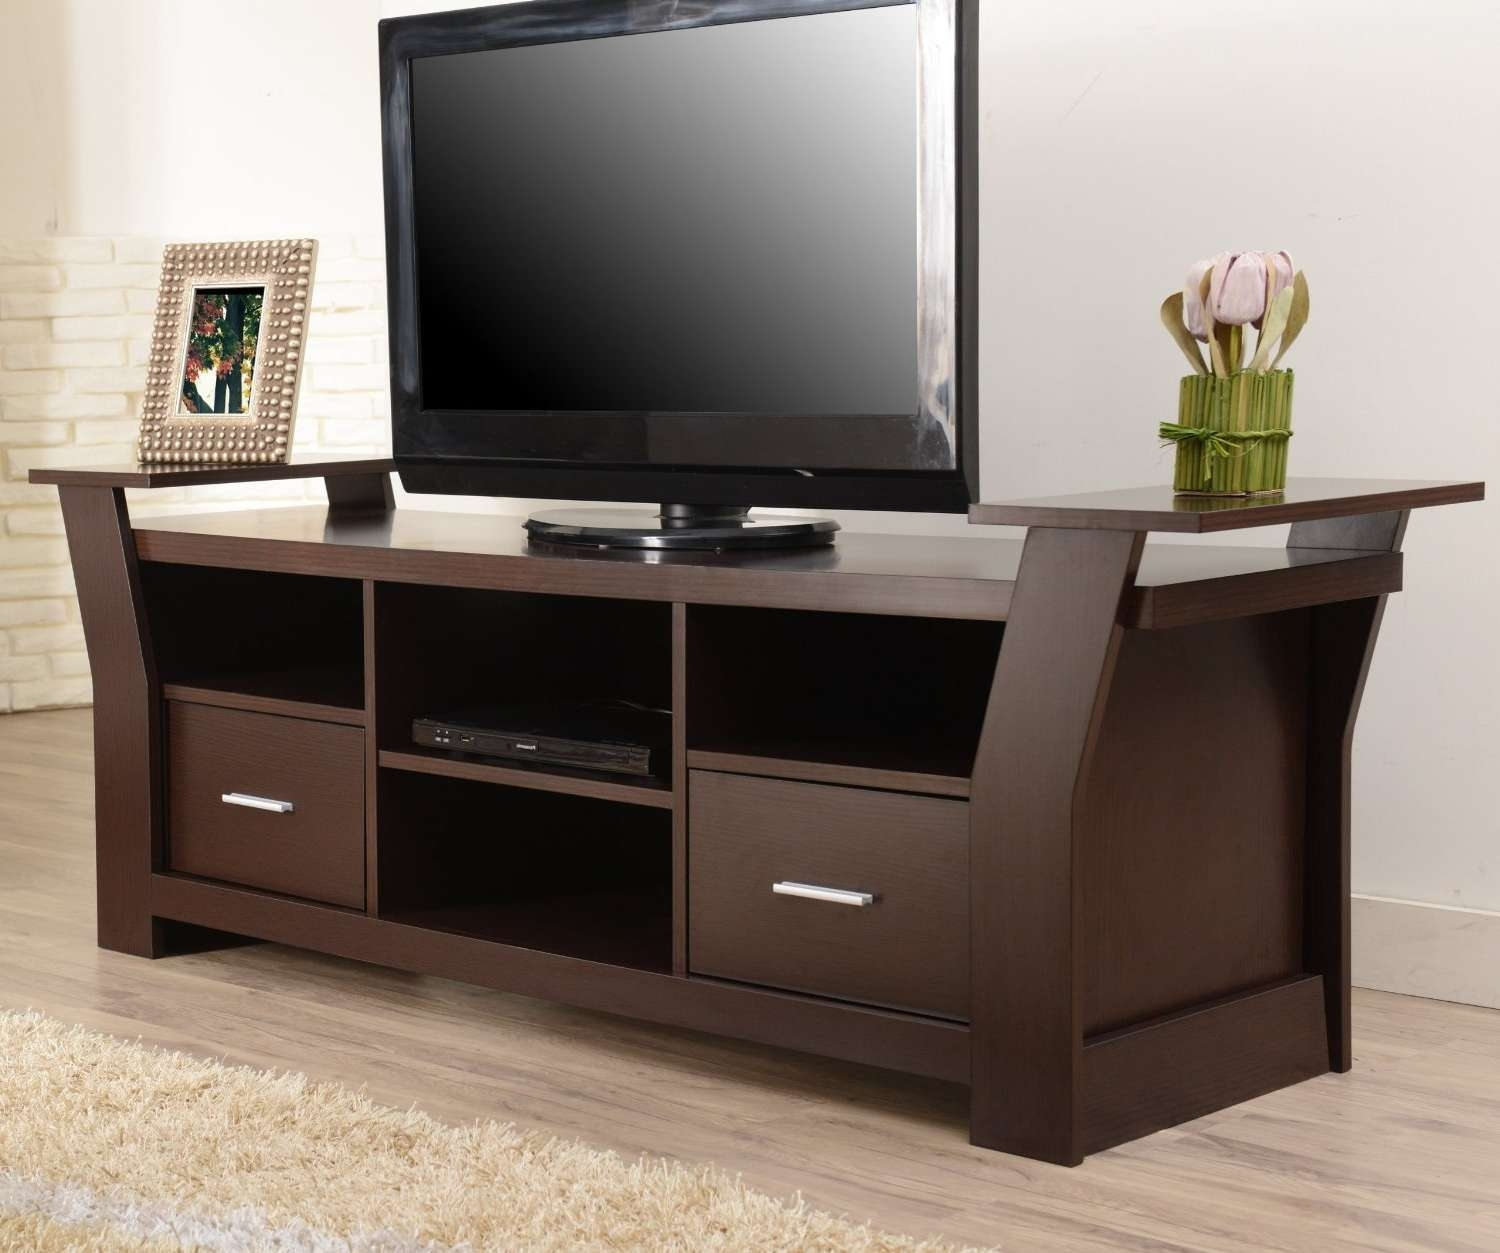 Wall Units: Tv Stands At Walmart Walmart Tv Stands 55 Inch, Tall Within Dvd Tv Stands (View 18 of 20)